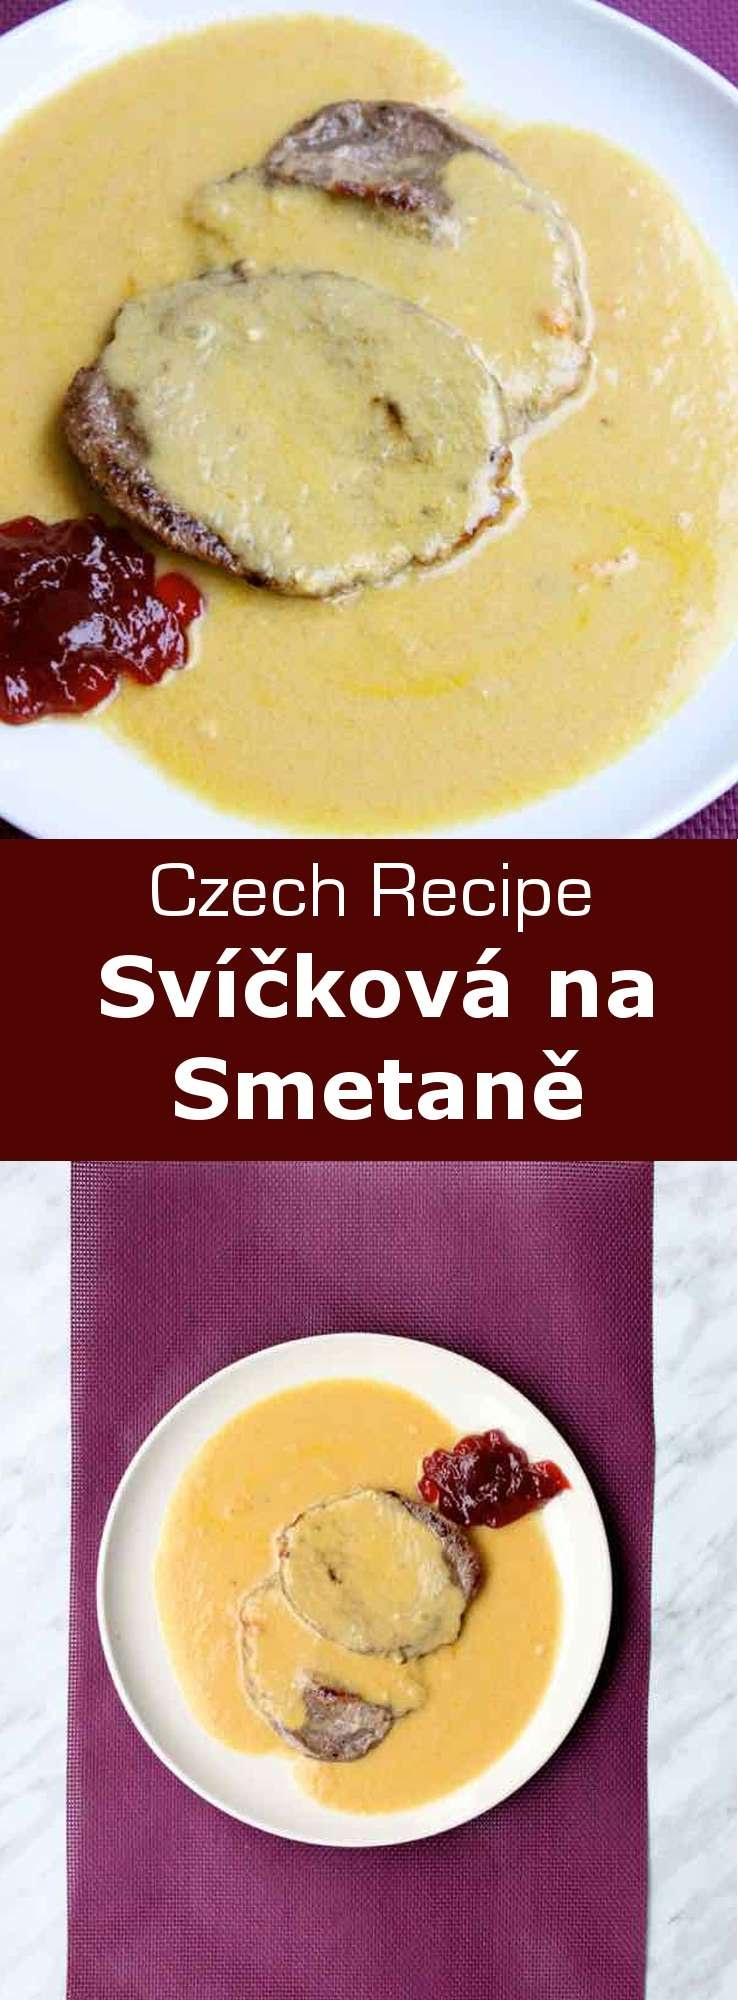 Svíčková na smetaně is a traditional Czech dish made with beef sirloin and vegetables like carrots and root vegetables, and cooked in a creamy sauce. #Czech #CzechCuisine #CzechRecipe #WorldCuisine #196flavors